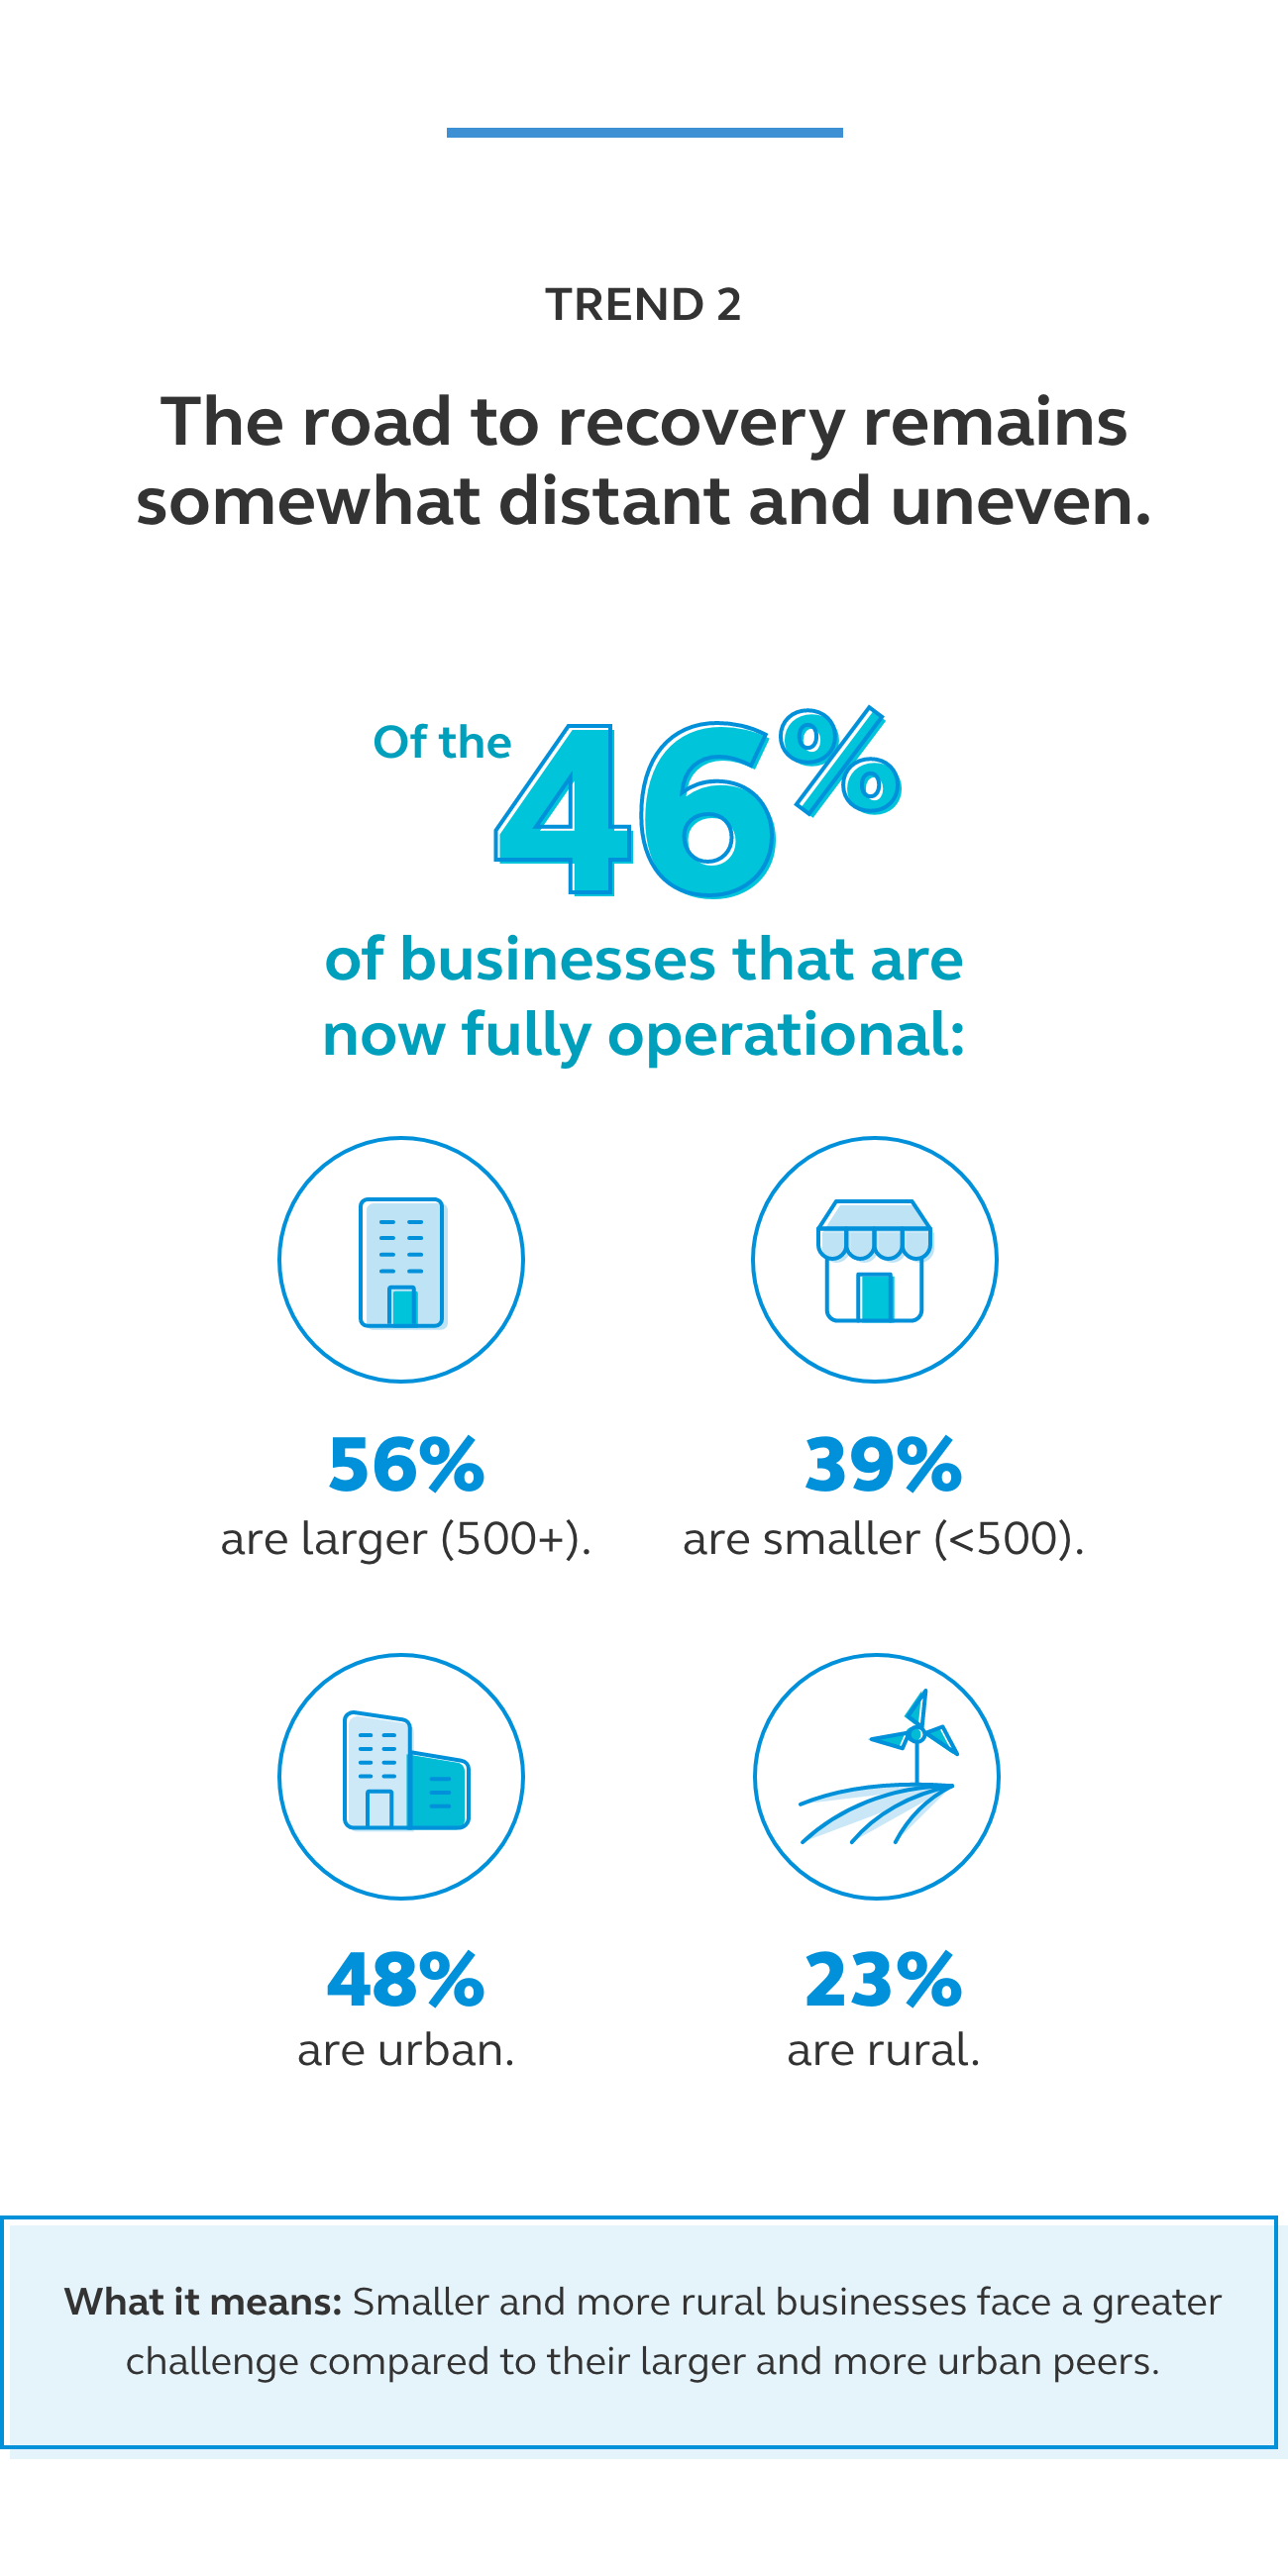 Graphic showing that of the businesses that are fully operational 56% are larger than 500 employees, 39% are smaller than 500 employees, 48% are urban, and 23% are rural.